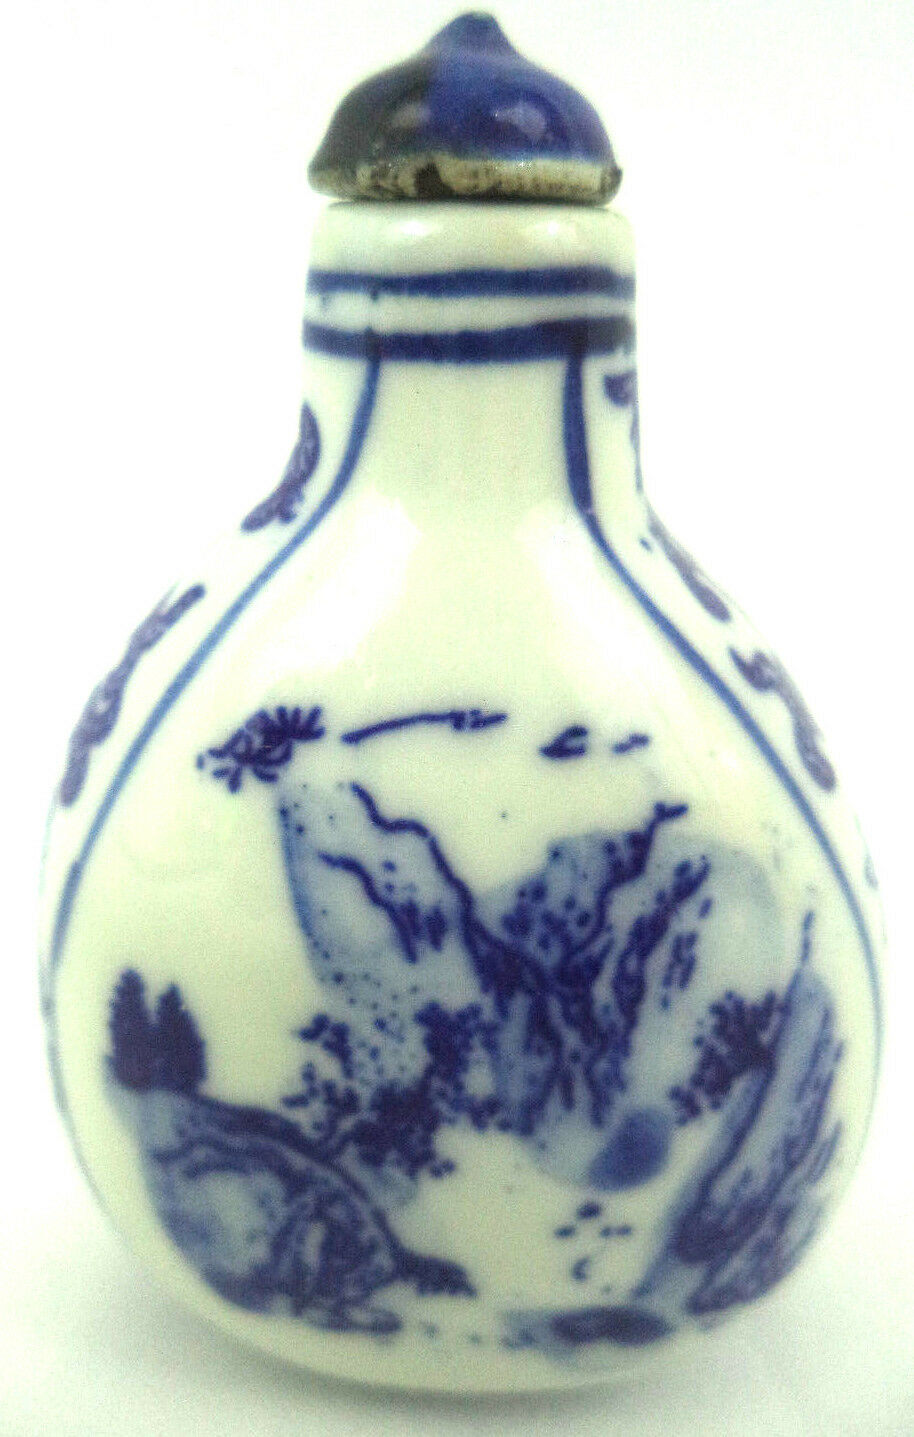 Vintage Chinese Porcelain Snuff Bottle Depicting Flowers/Mountains Signed